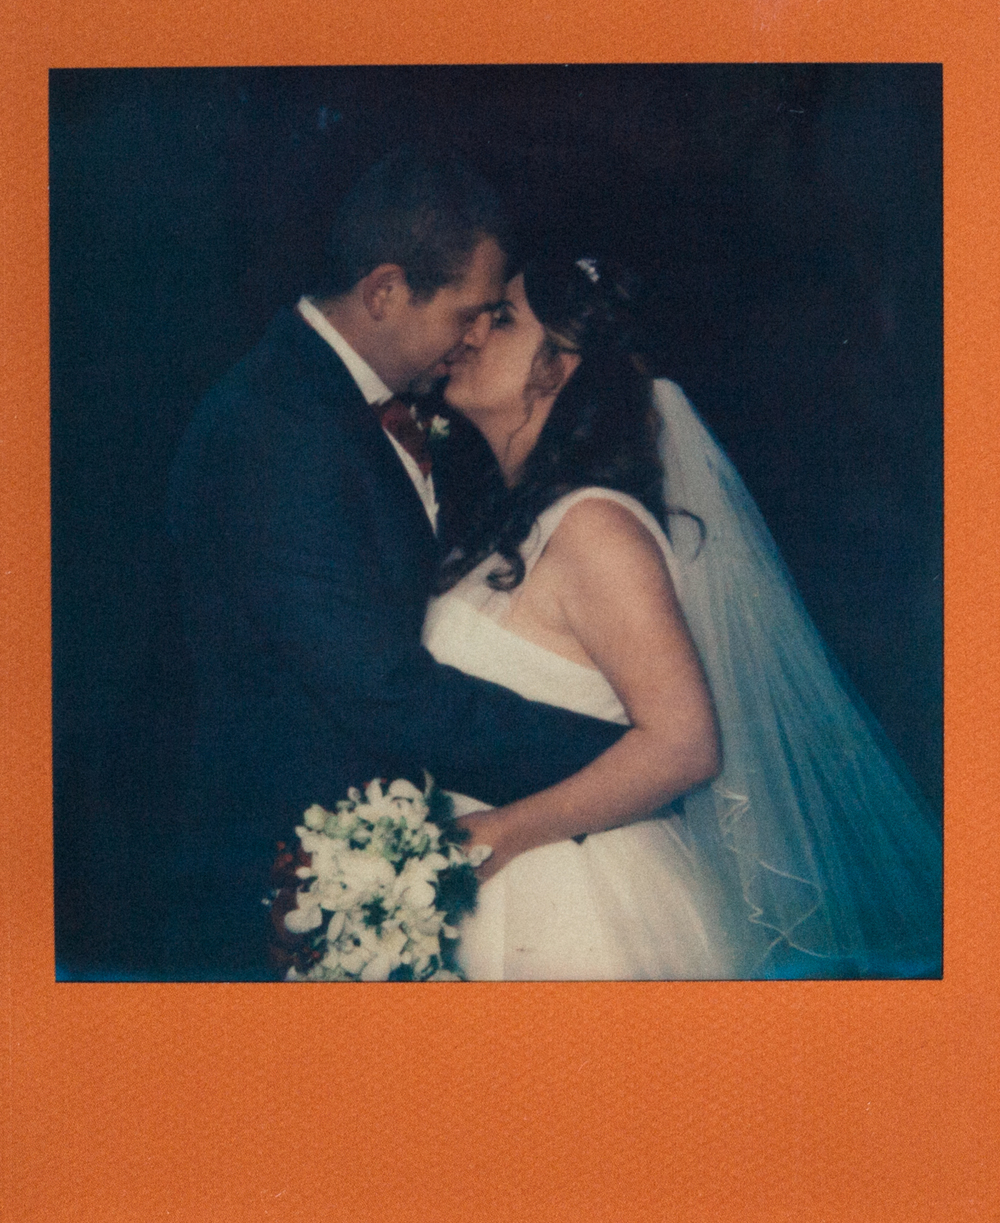 Polaroid-Wedding-Photography-103.jpg